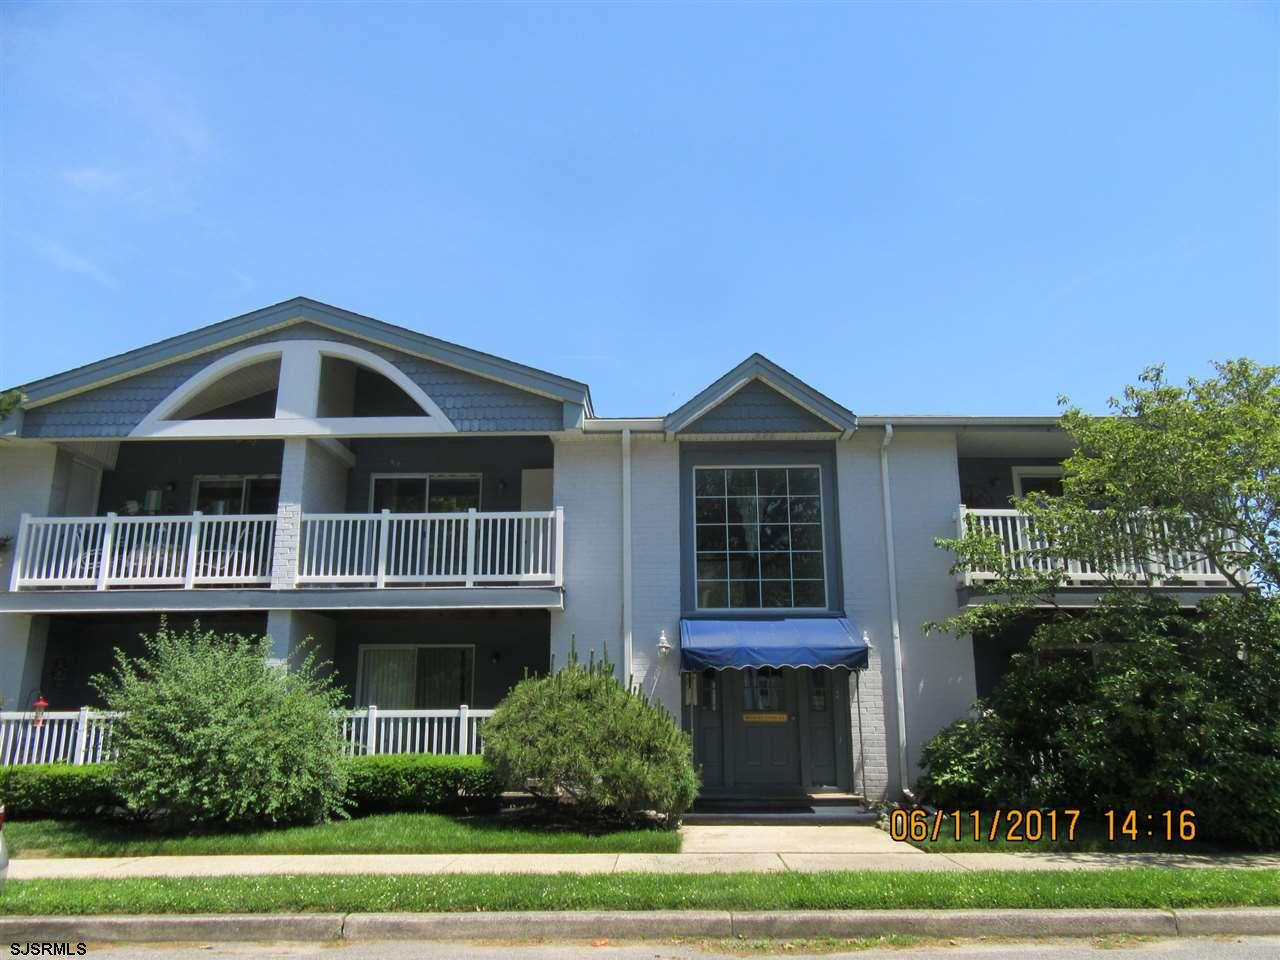 540 Sunrise #A Ave, Somers Point, NJ 08244